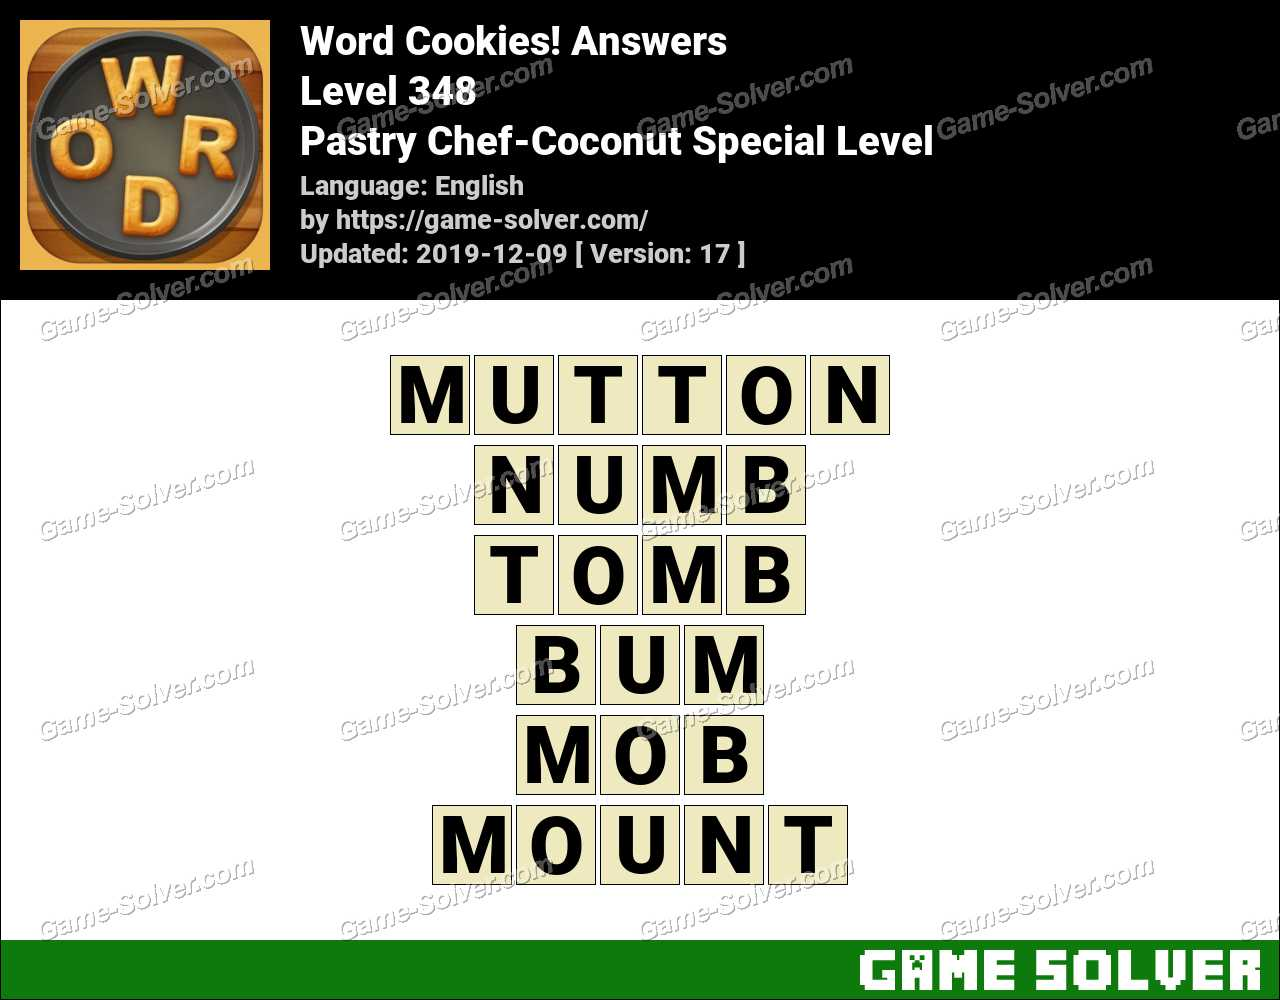 Word Cookies Pastry Chef-Coconut Special Level Answers